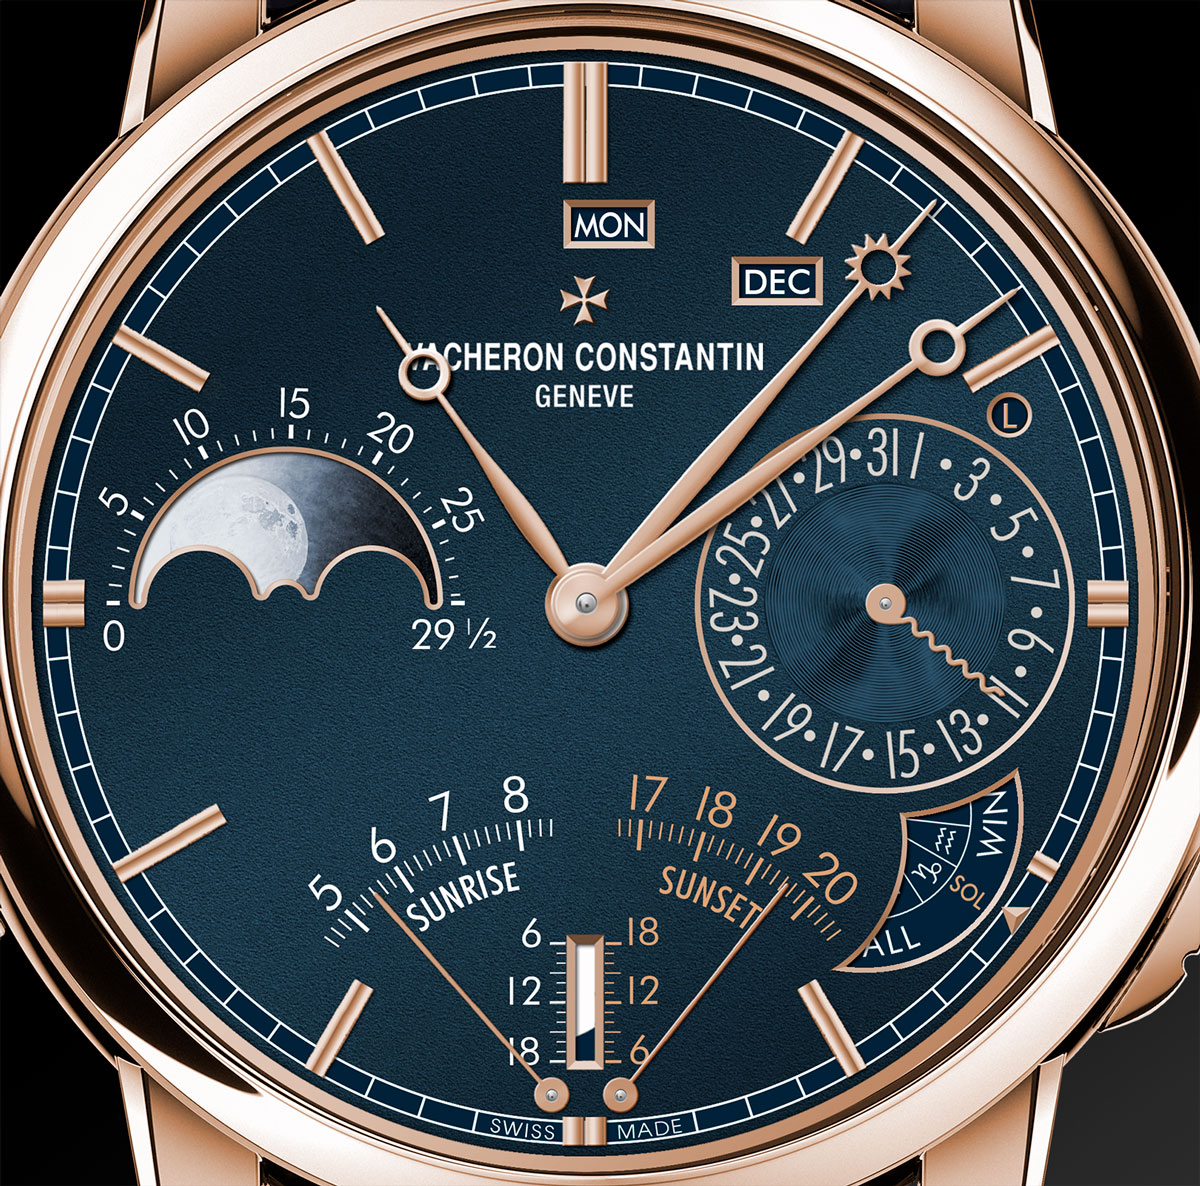 Les Cabinotiers Astronomical Grand Complication Sonnerie 1 Horas y Minutos anverso